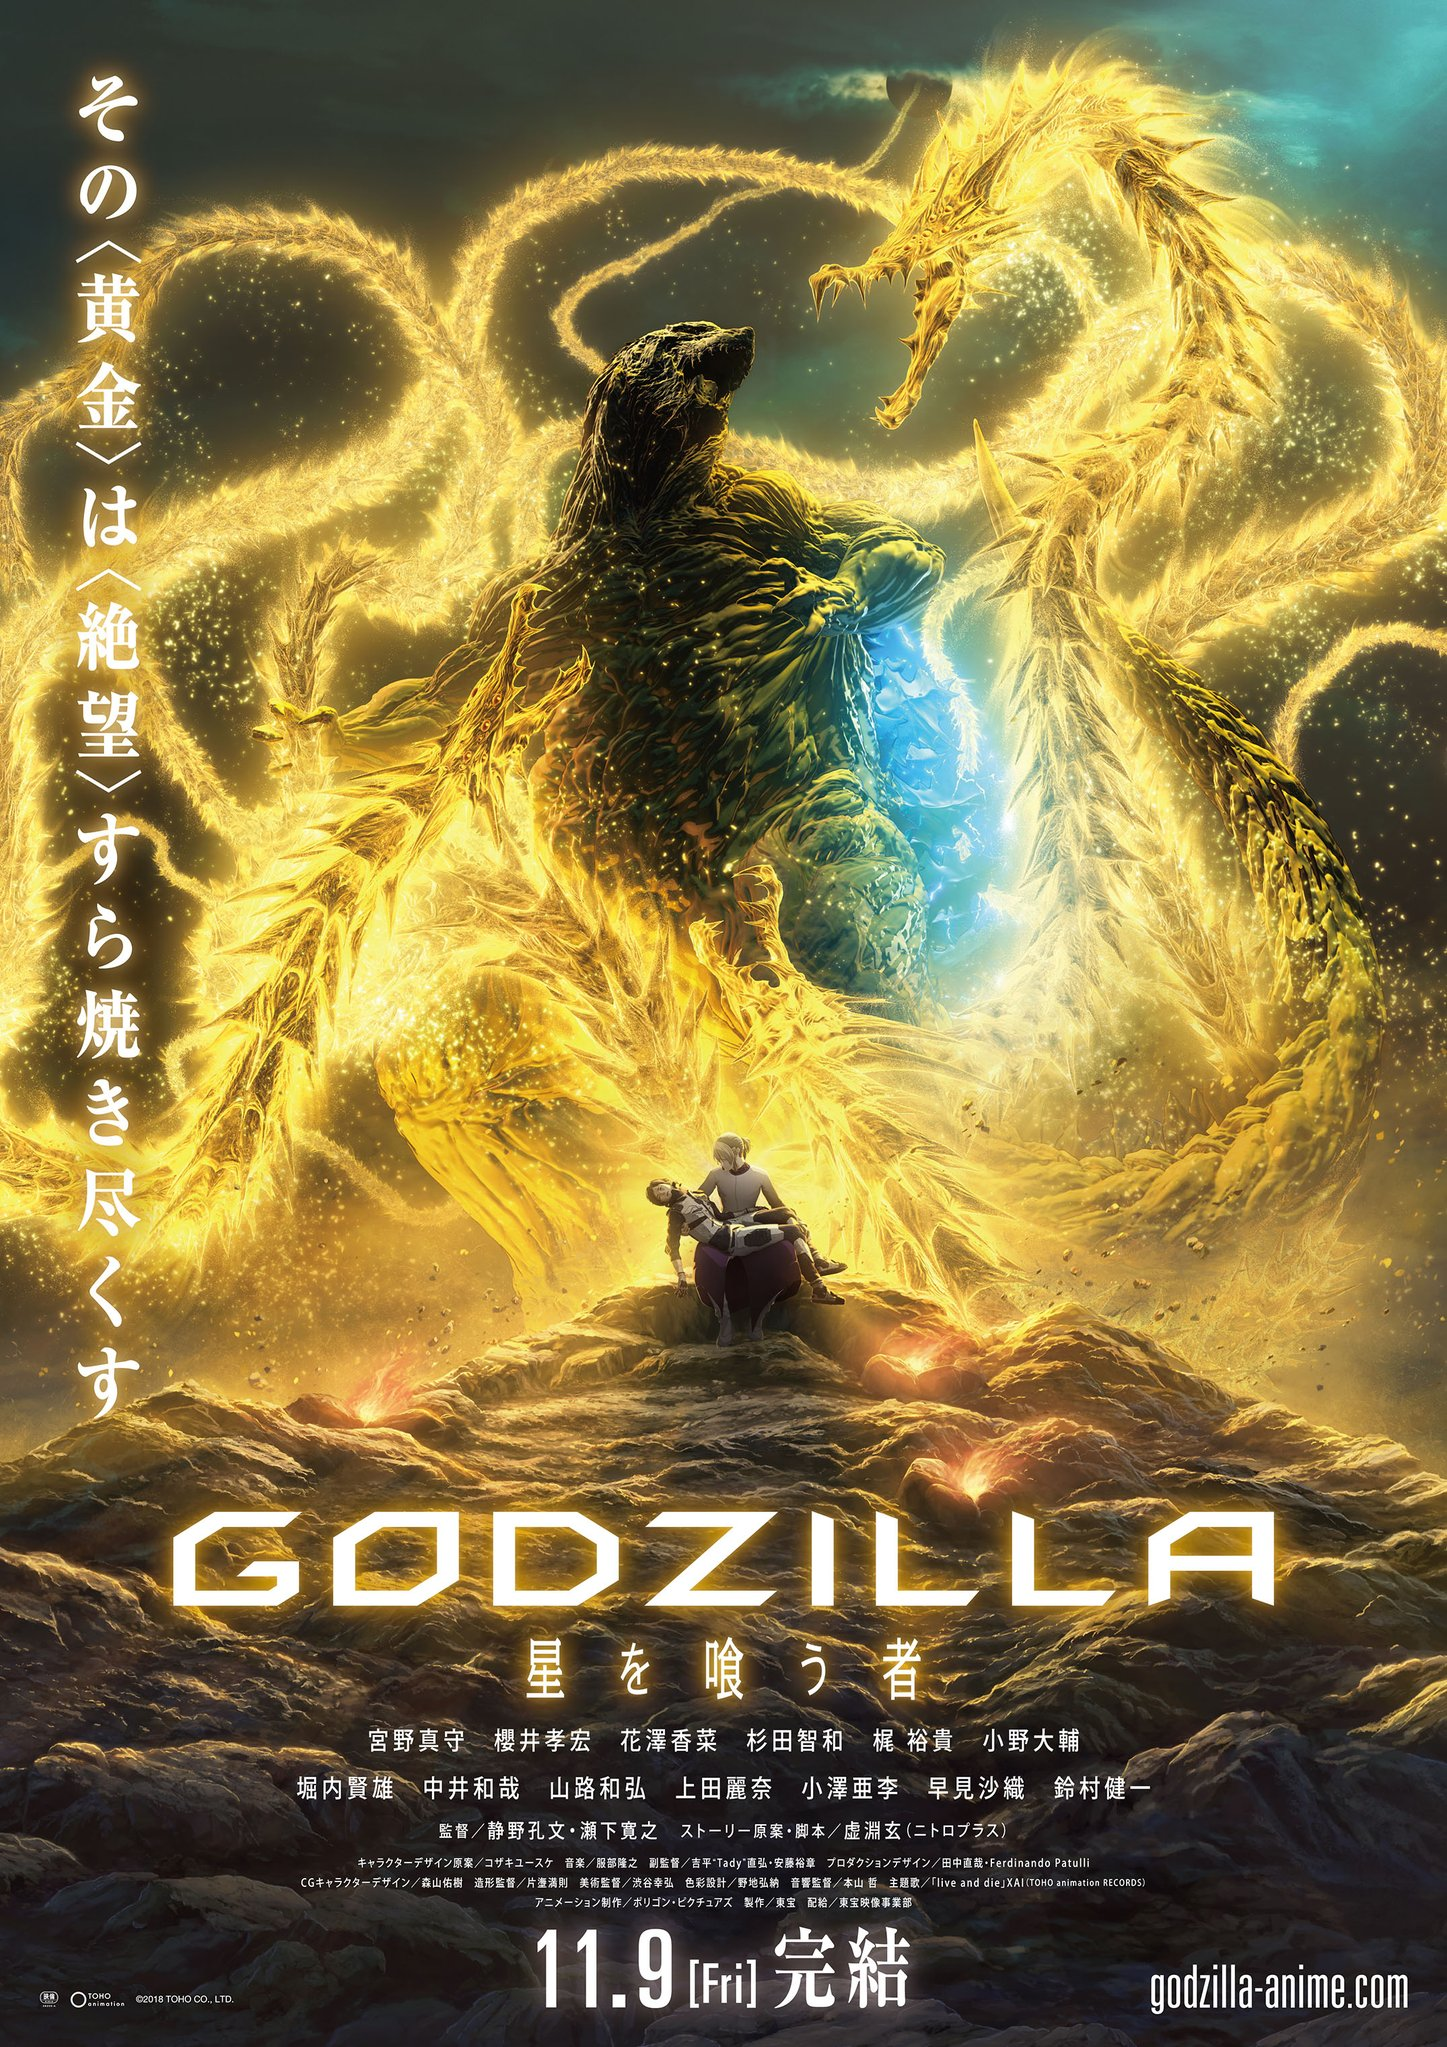 [Netflix] Godzilla: The Planet Eater ซับไทย